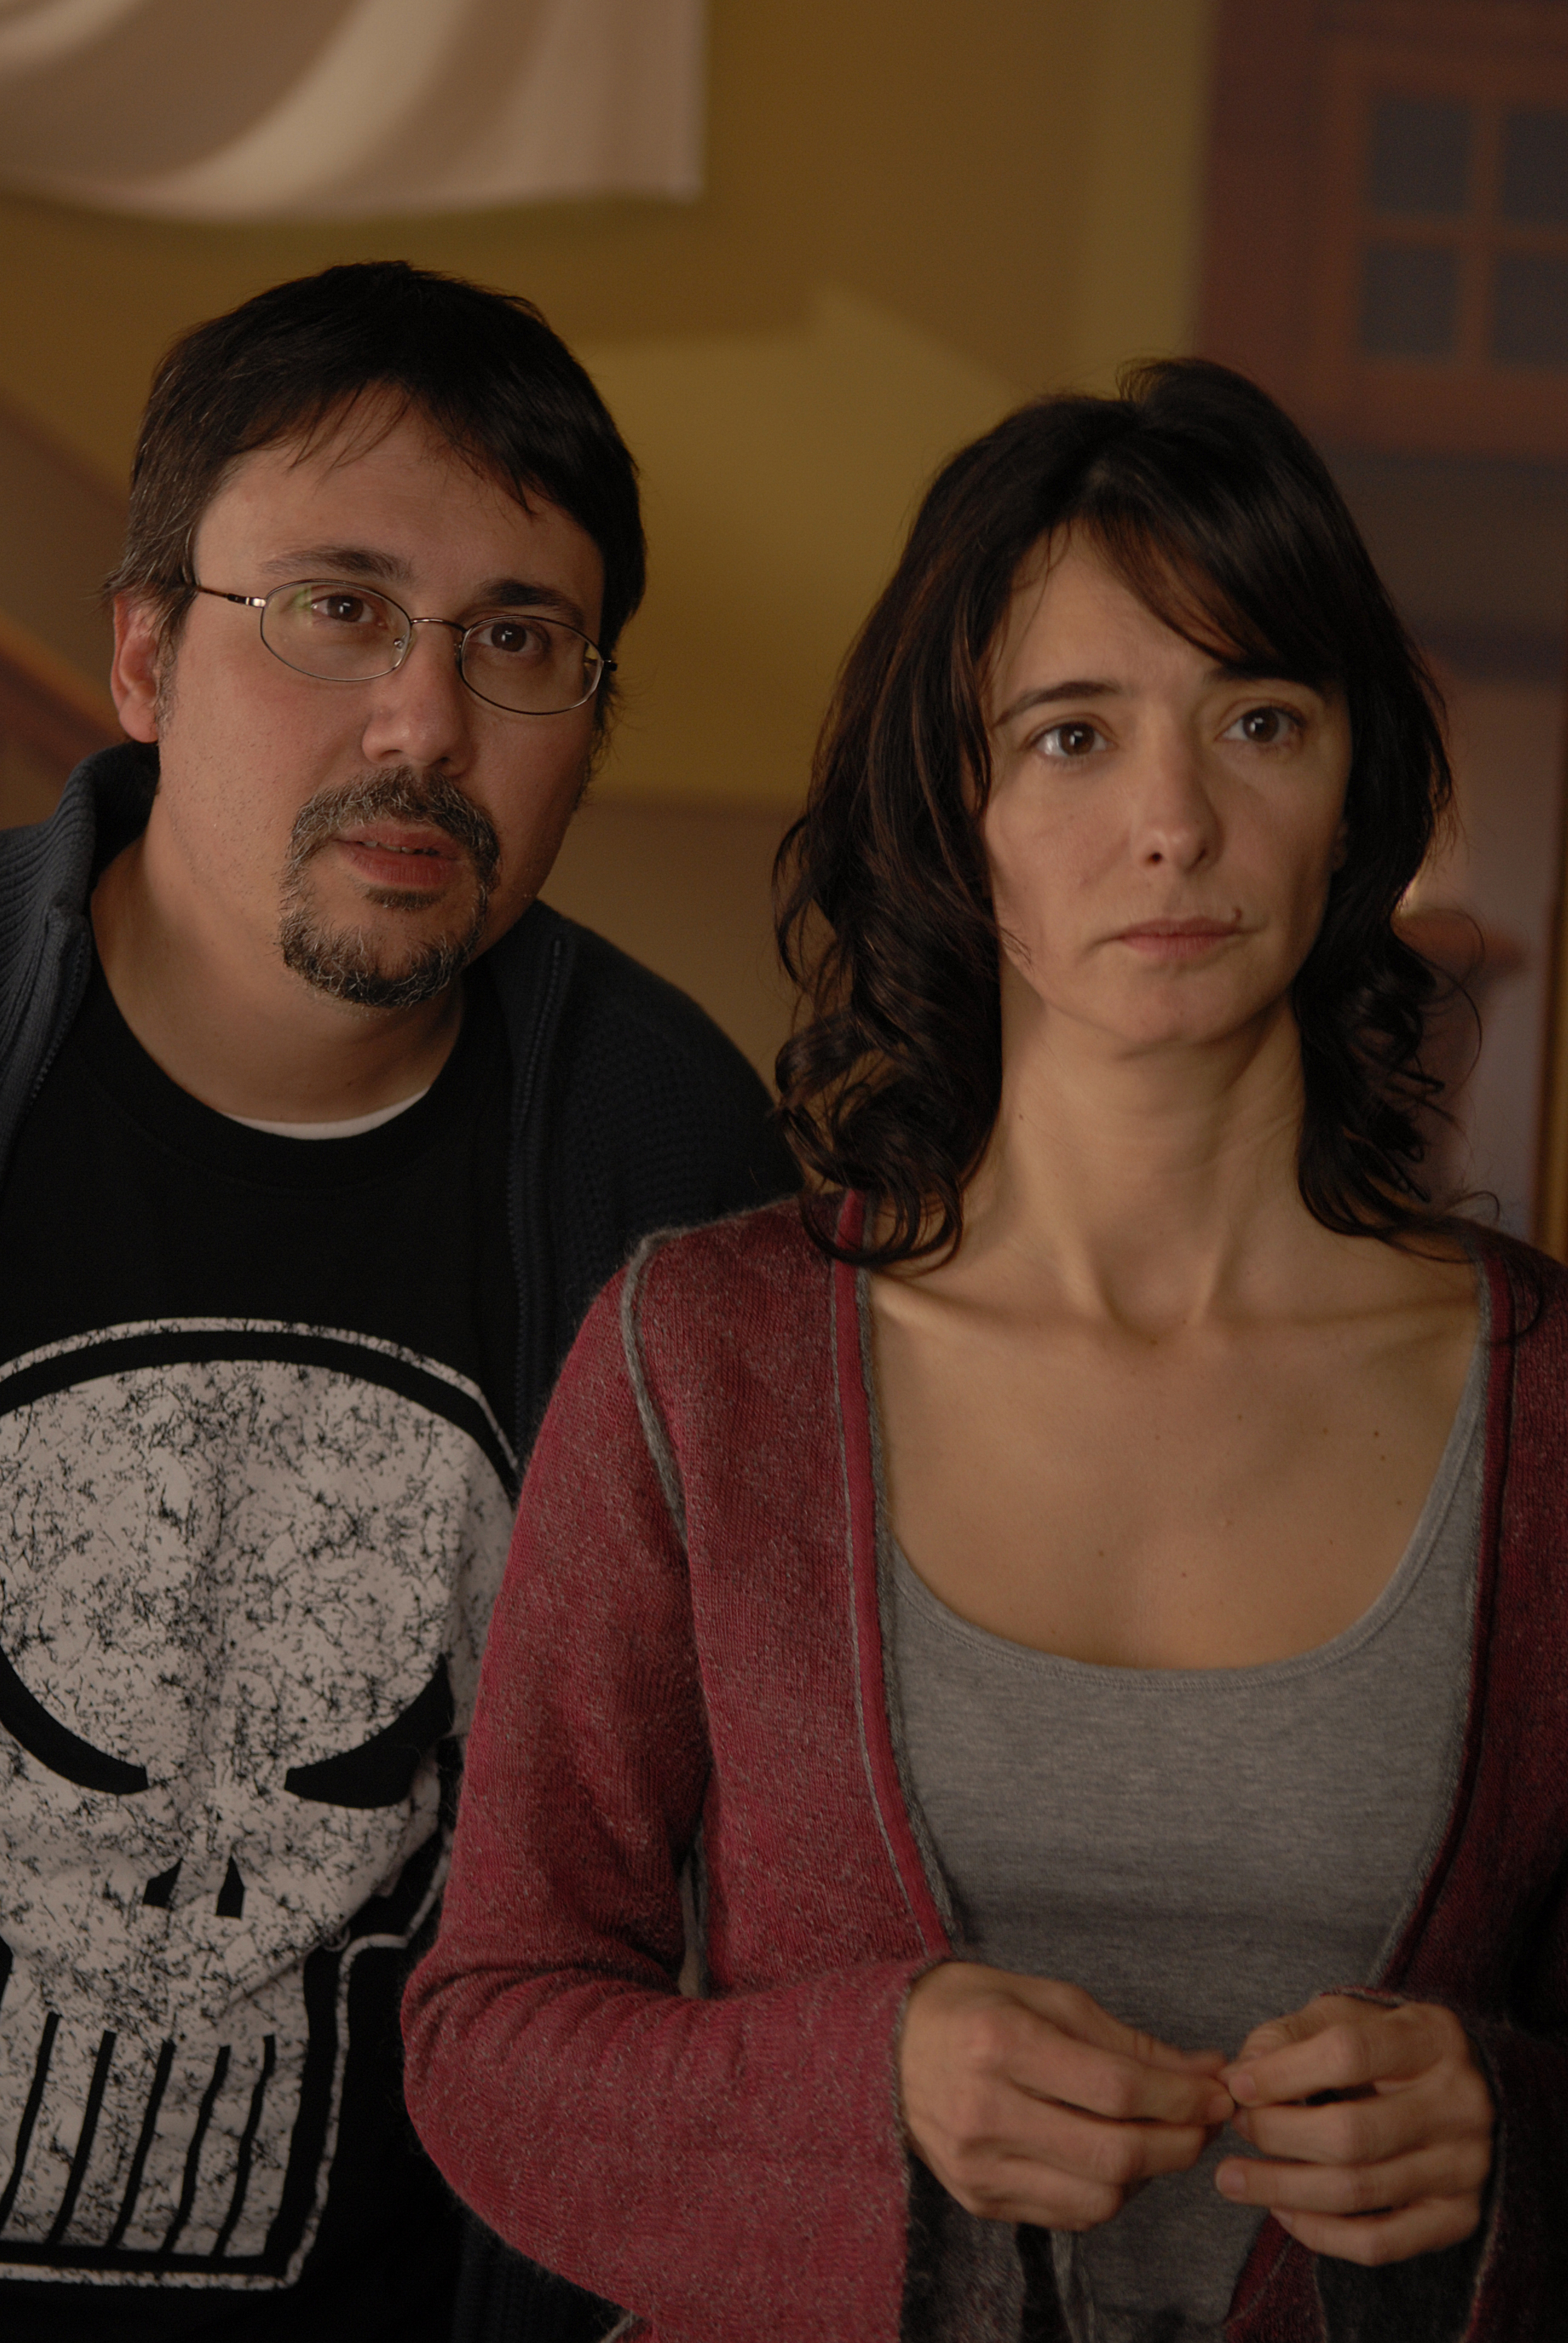 Elio Quiroga directing Ana Torrent shooting NO-DO, 2007